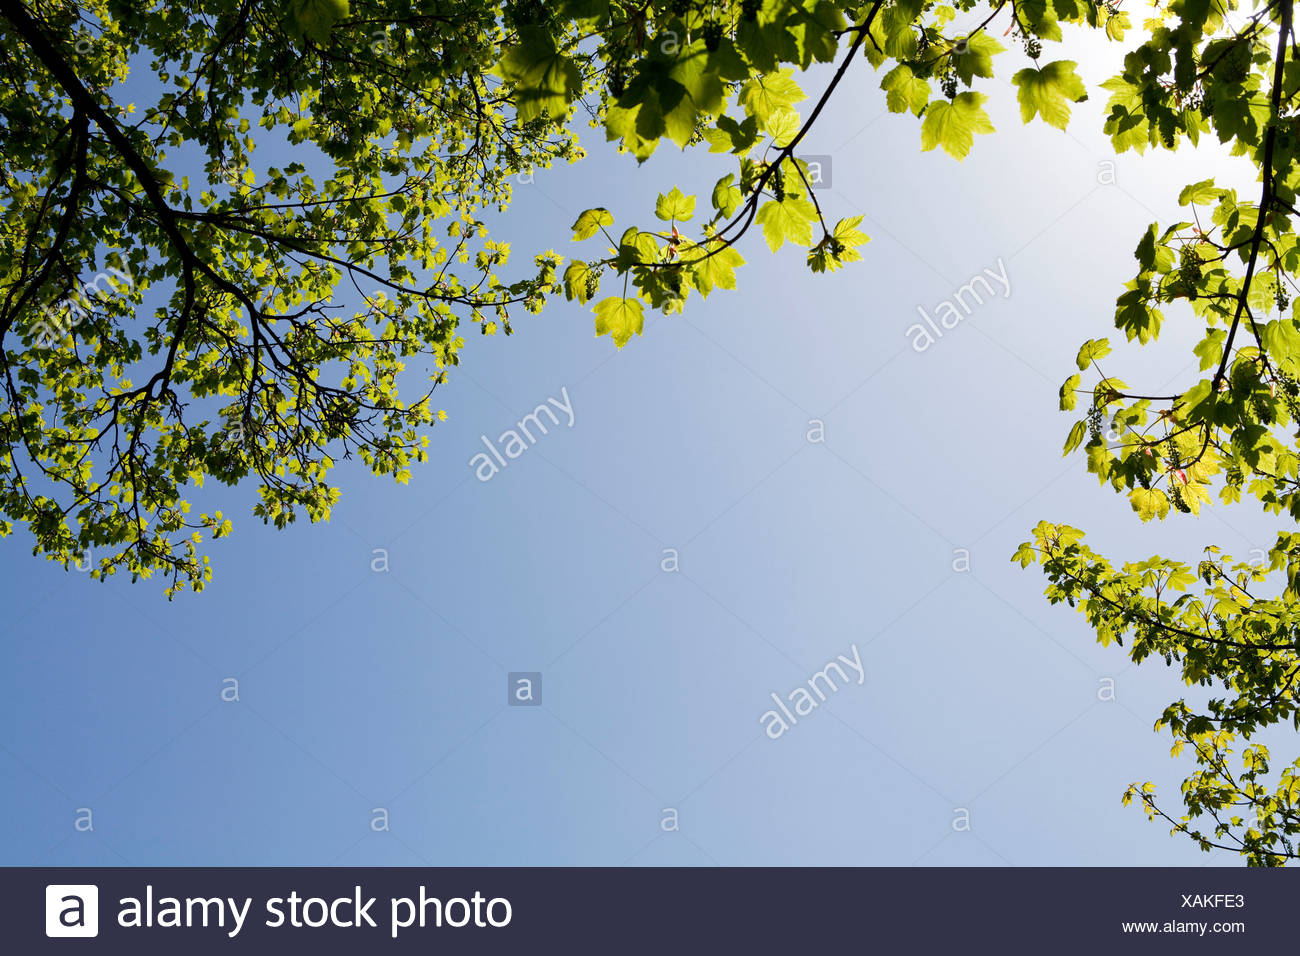 Maple leaves on hot summer day - Stock Image